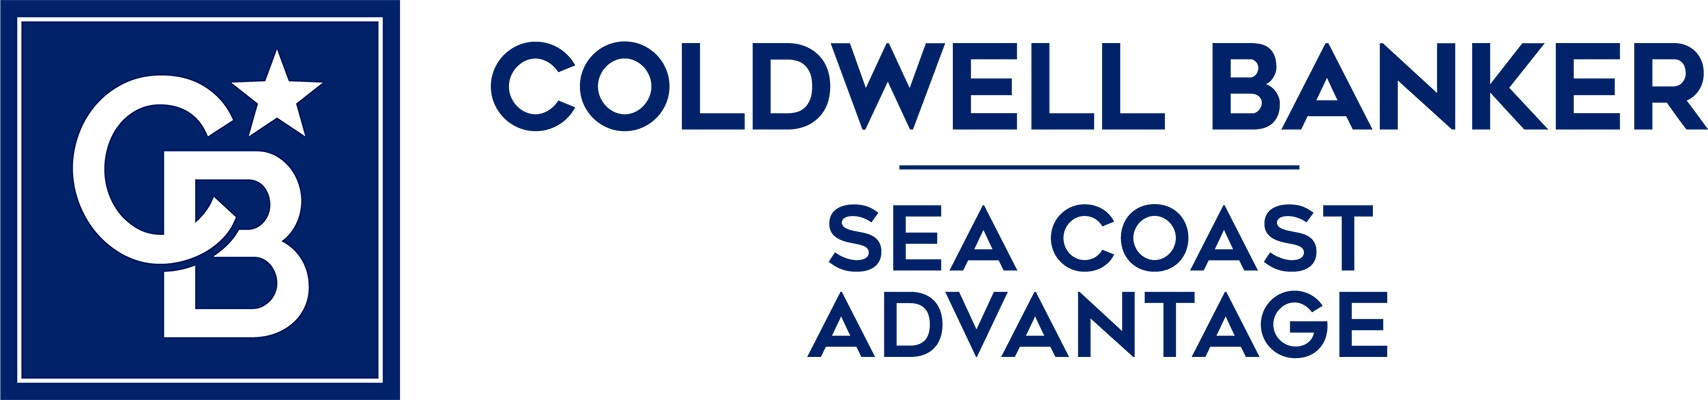 Caroline Ciener - Coldwell Banker Sea Coast Advantage Realty Logo